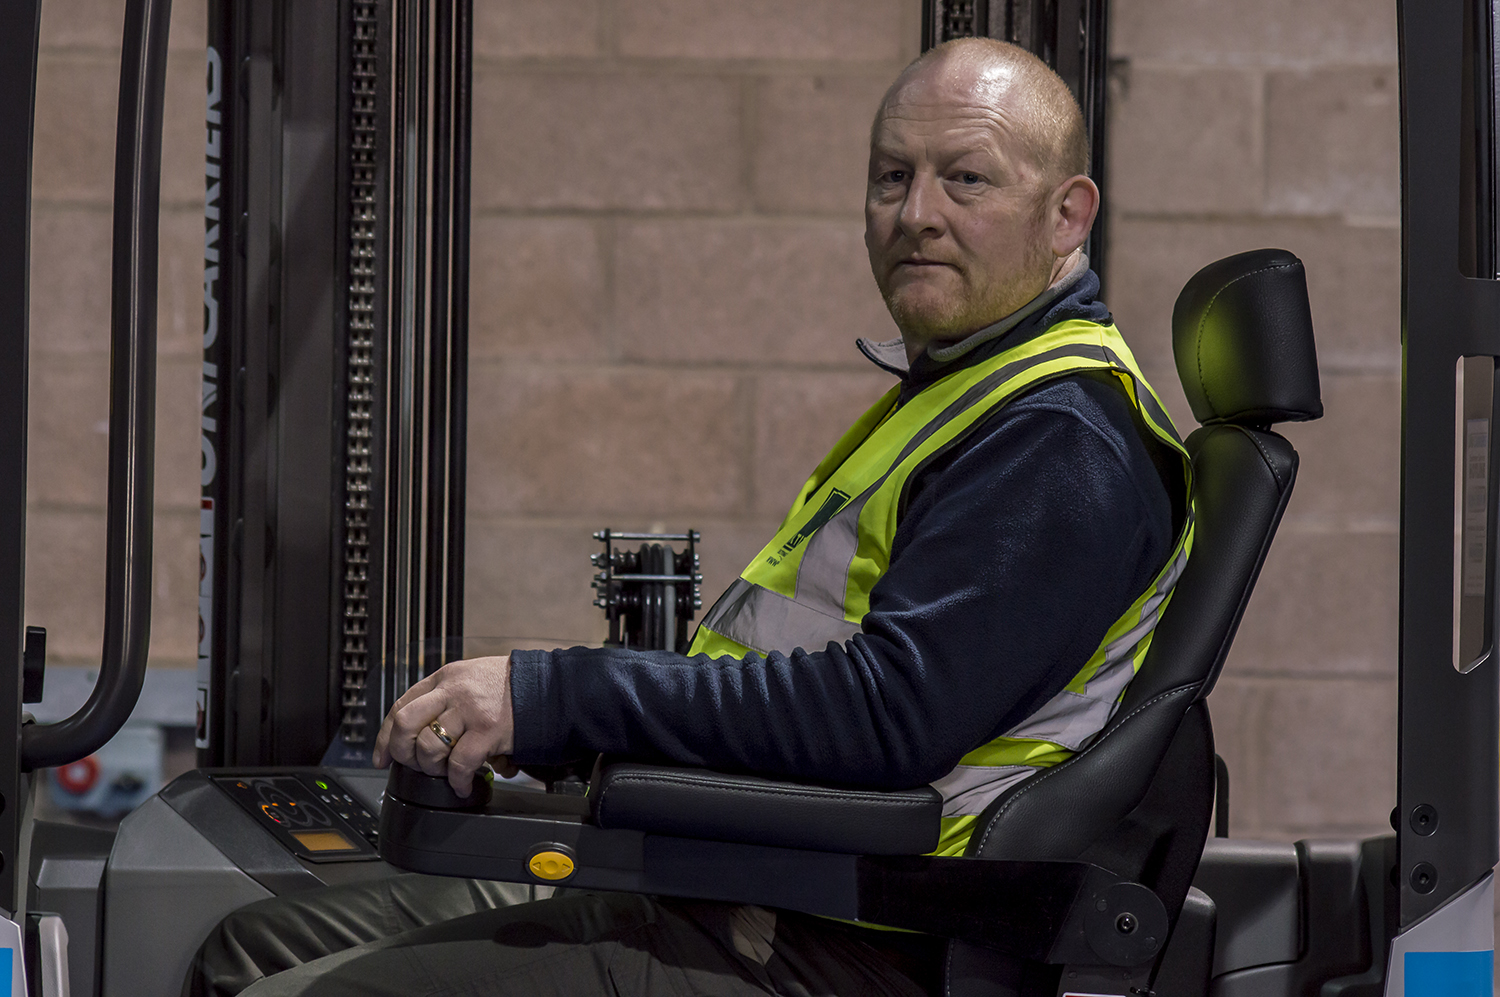 When referring to a 'licence', what is actually meant is a lift truck certificate of basic training and this does exist for forklift operators.